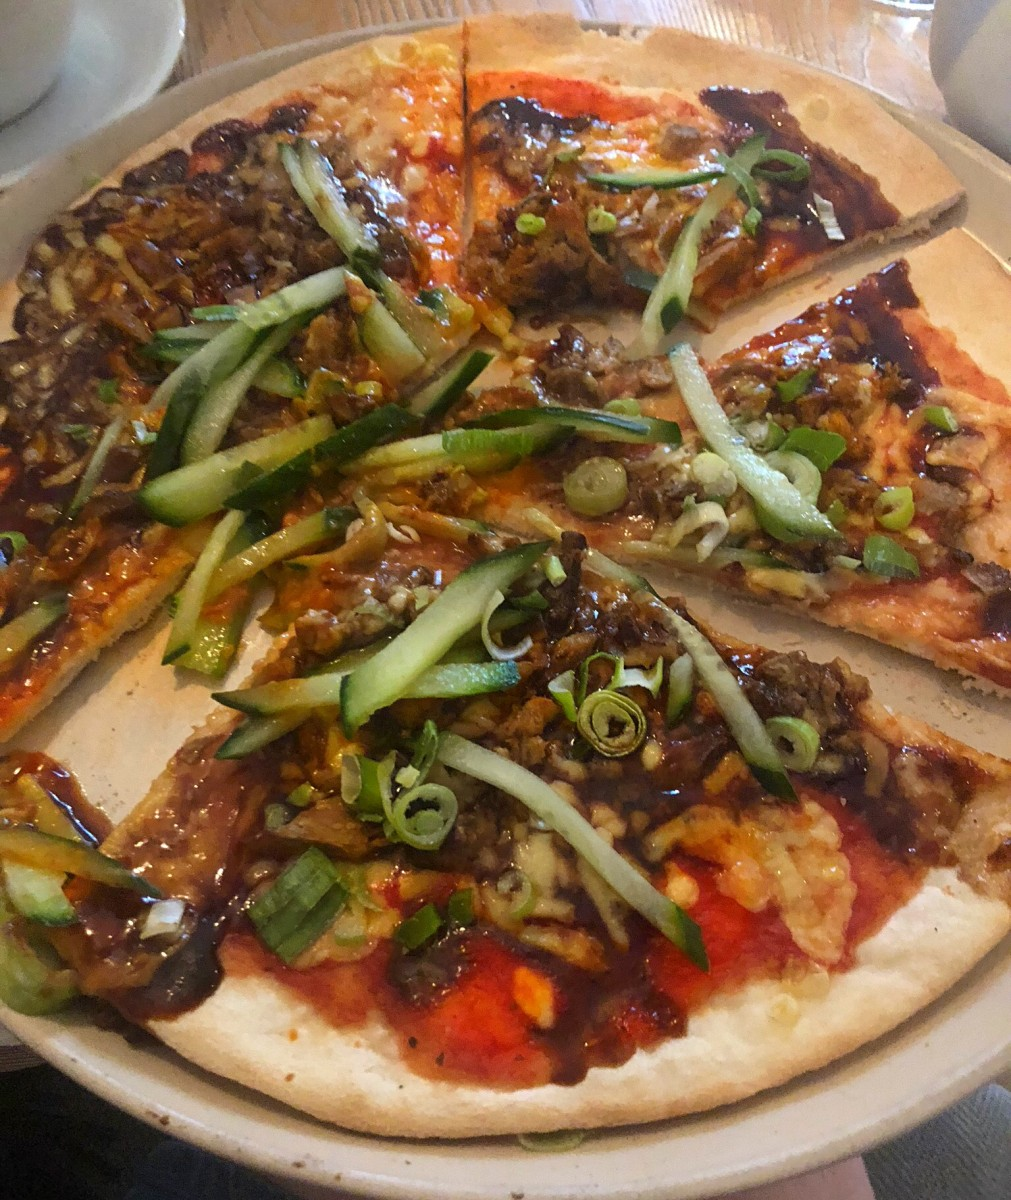 This gluten free stratford upon avoid guide is perfect for coeliacs or those looking to be gluten and dairy free in stratford upon avon or gluten free pizza in stratford upon avon